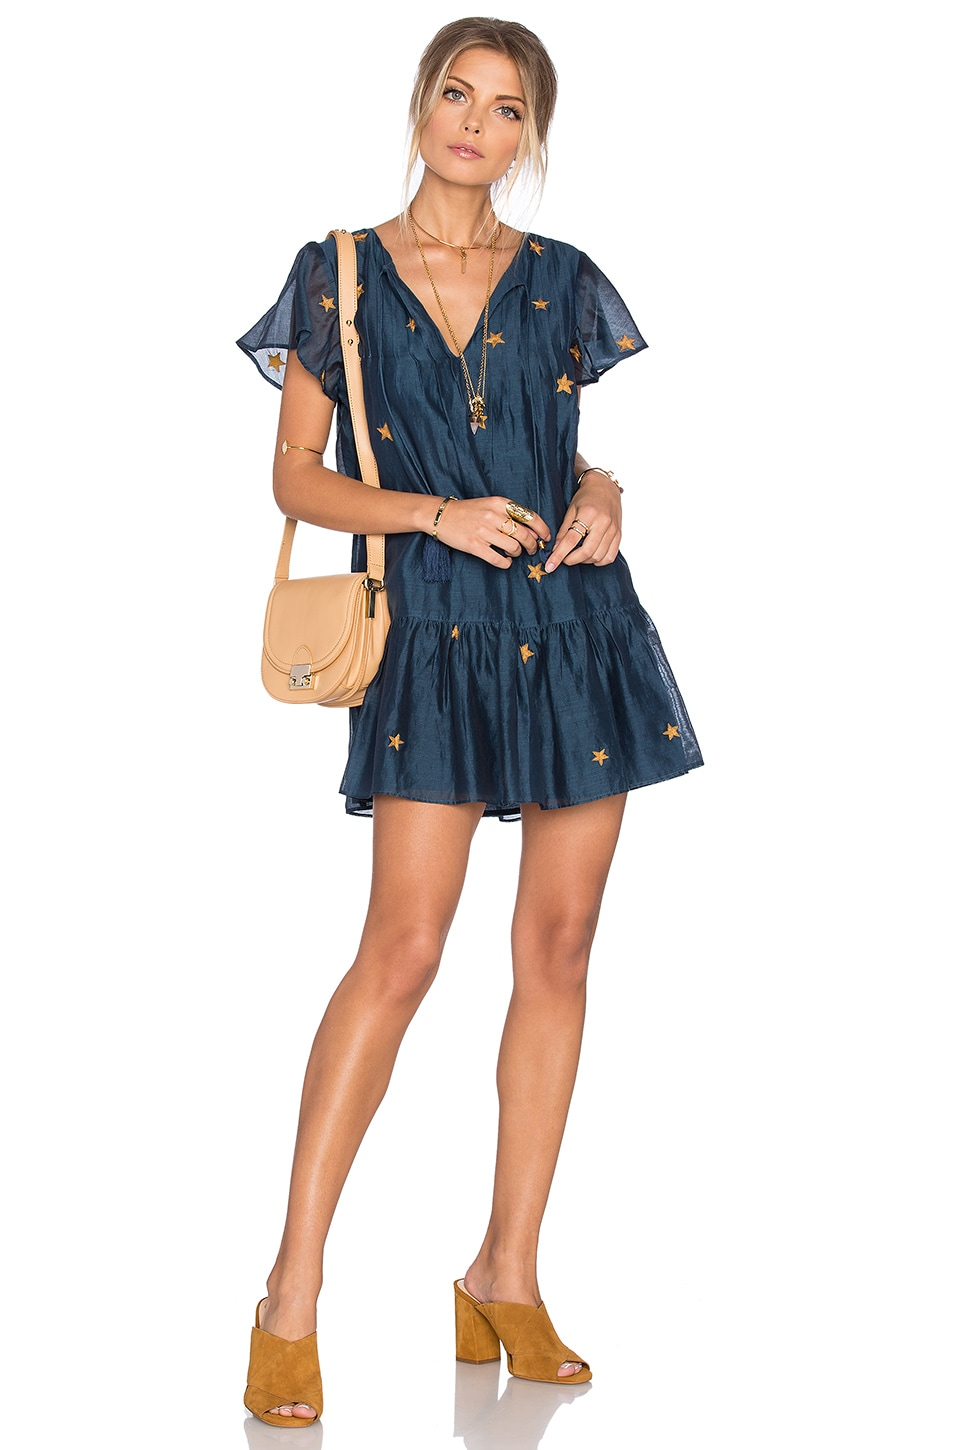 Tularosa Carson Dress in Navy & Gold